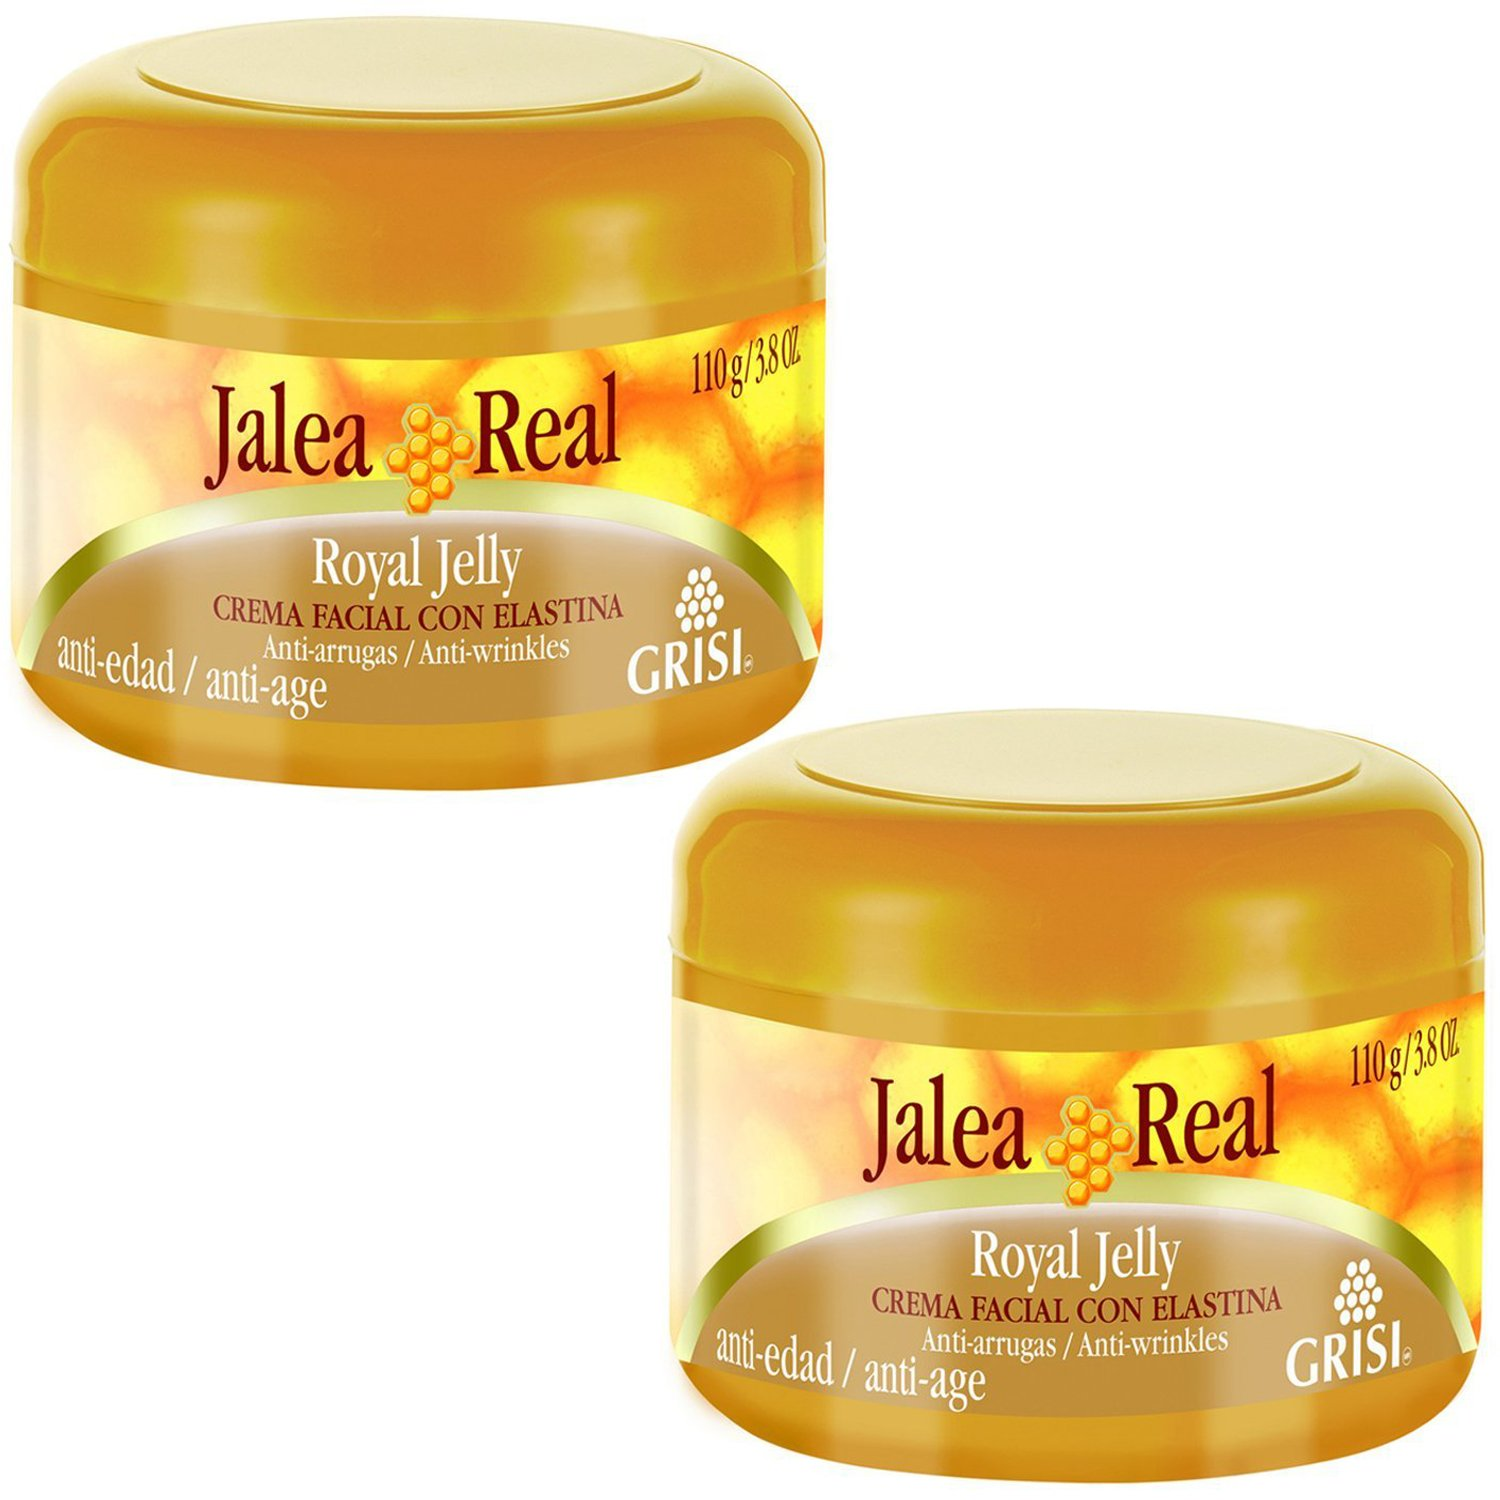 Jalea Real Anti Aging Anti Wrinkles Moisturizing Cream with Elastin 3.8 Oz. by Grisi